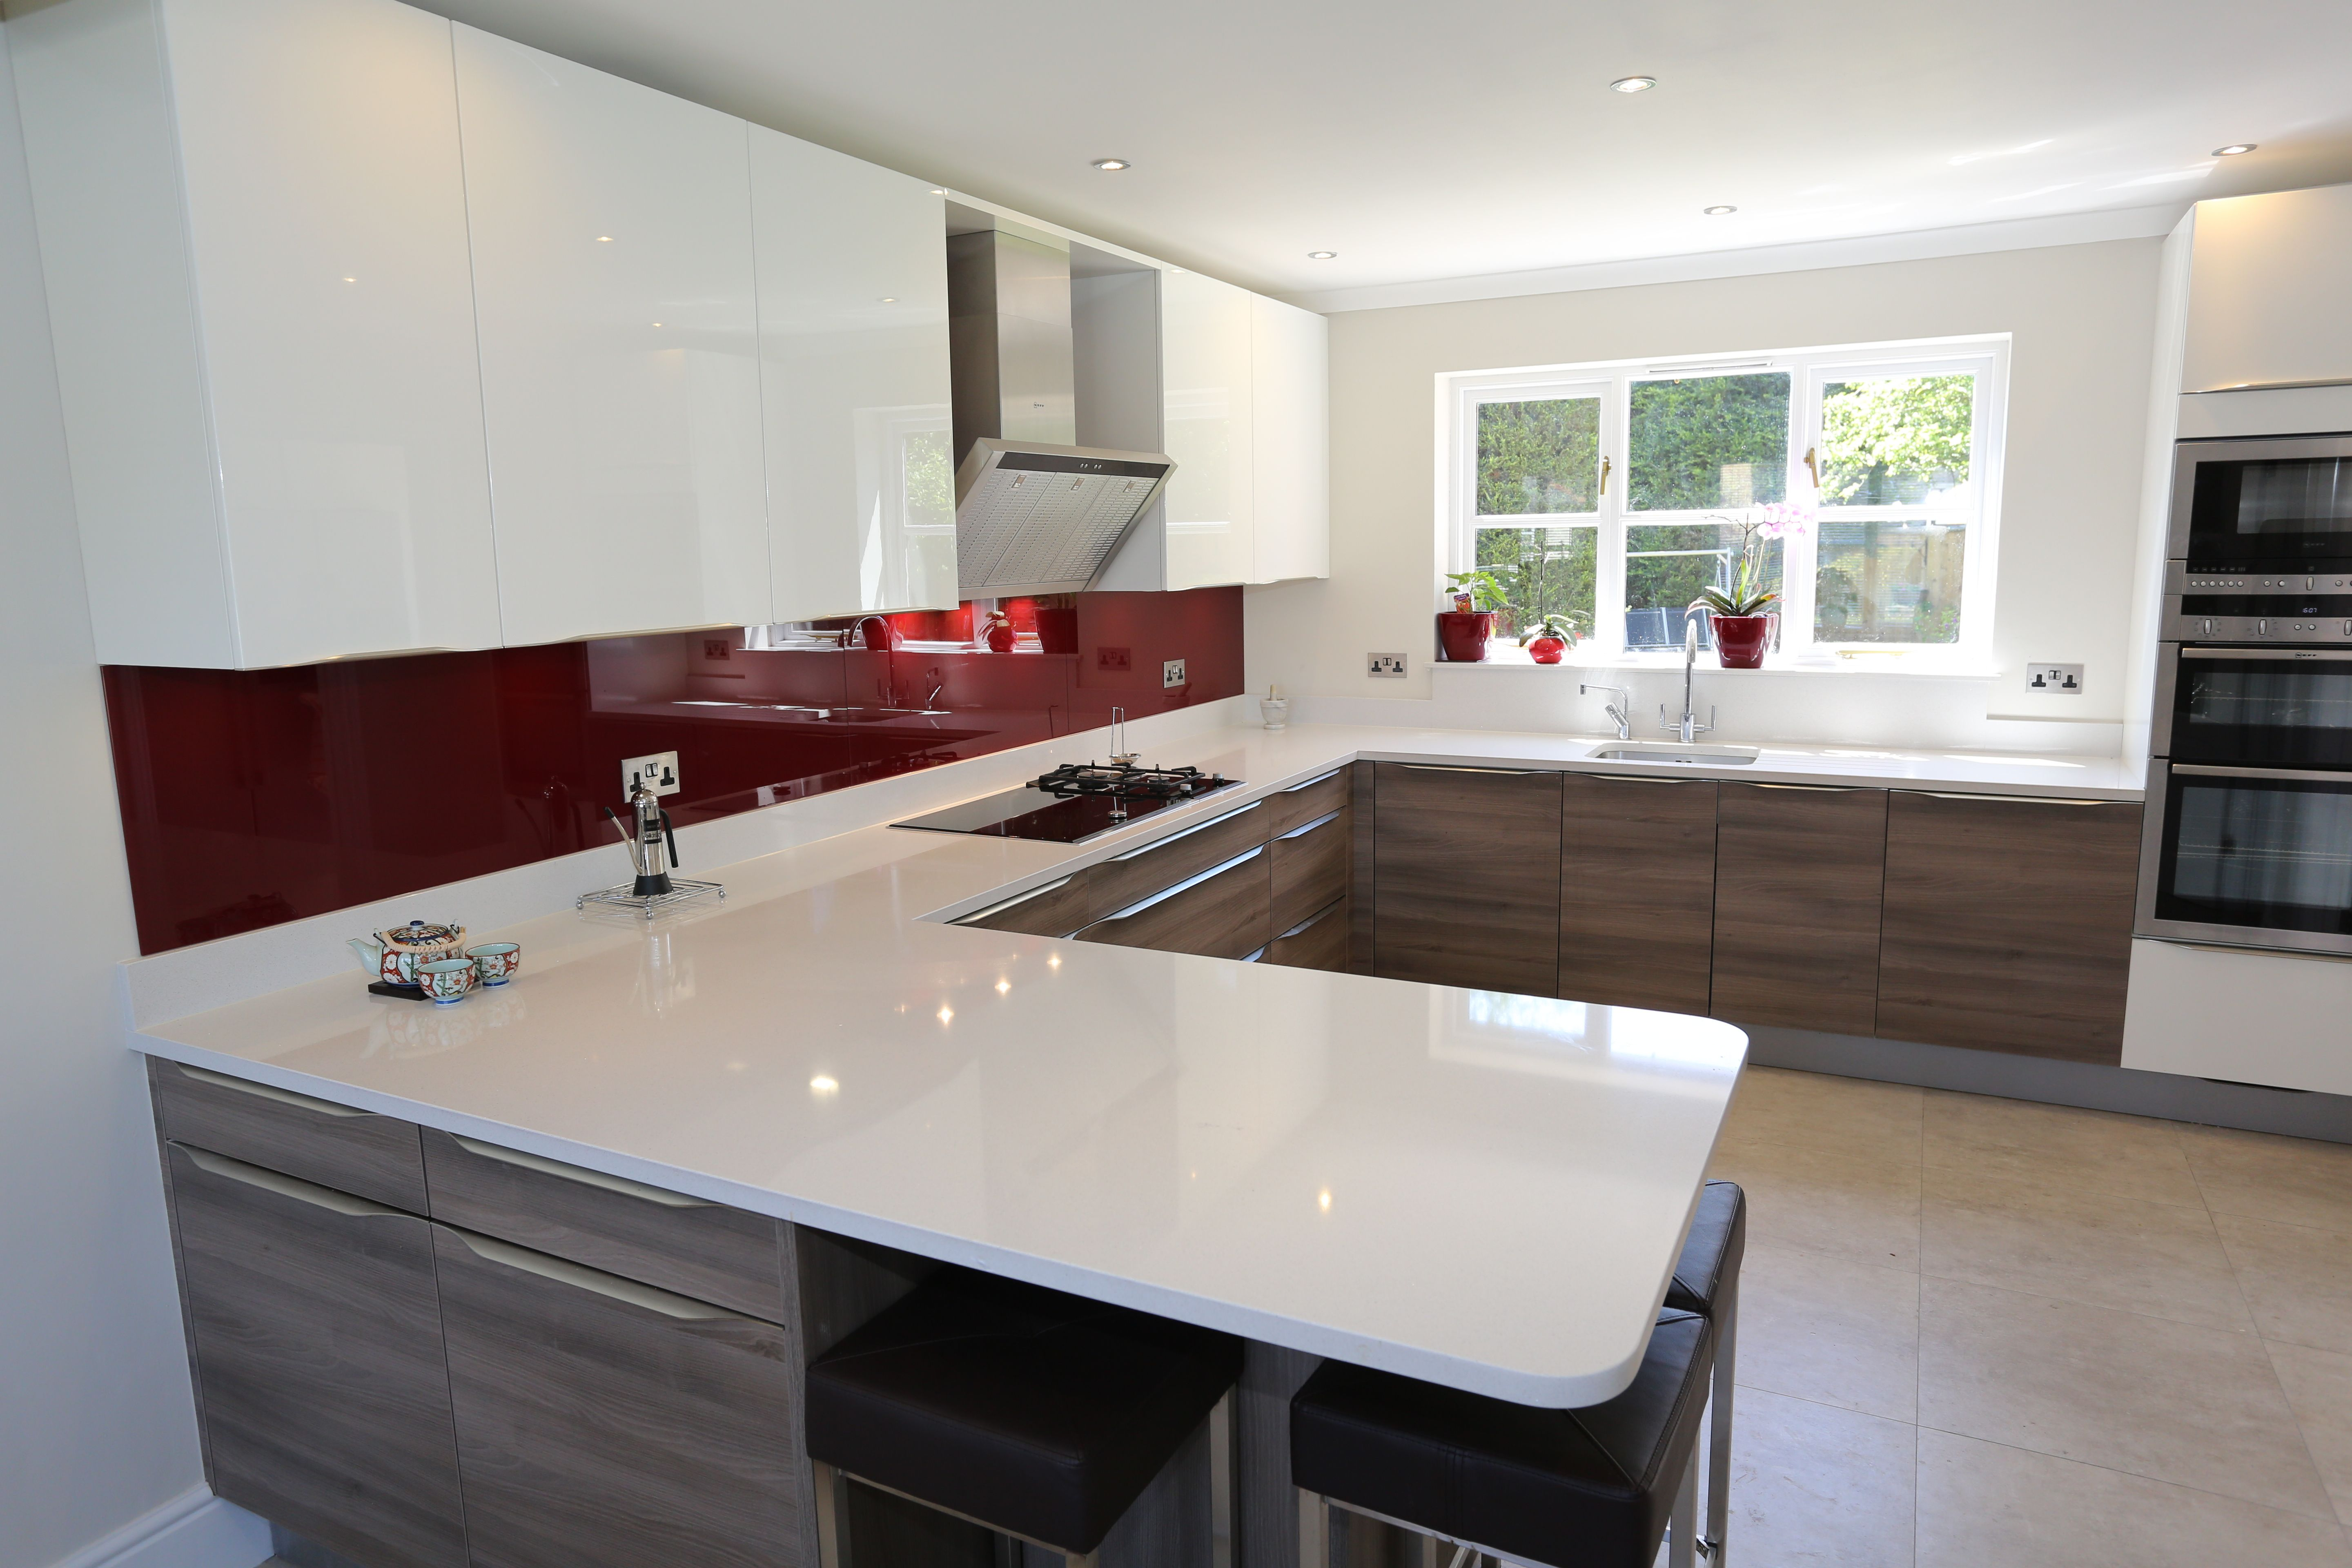 Shiny White And Grey Acacia Wood Kitchen By Hacker At The Kitchen Company